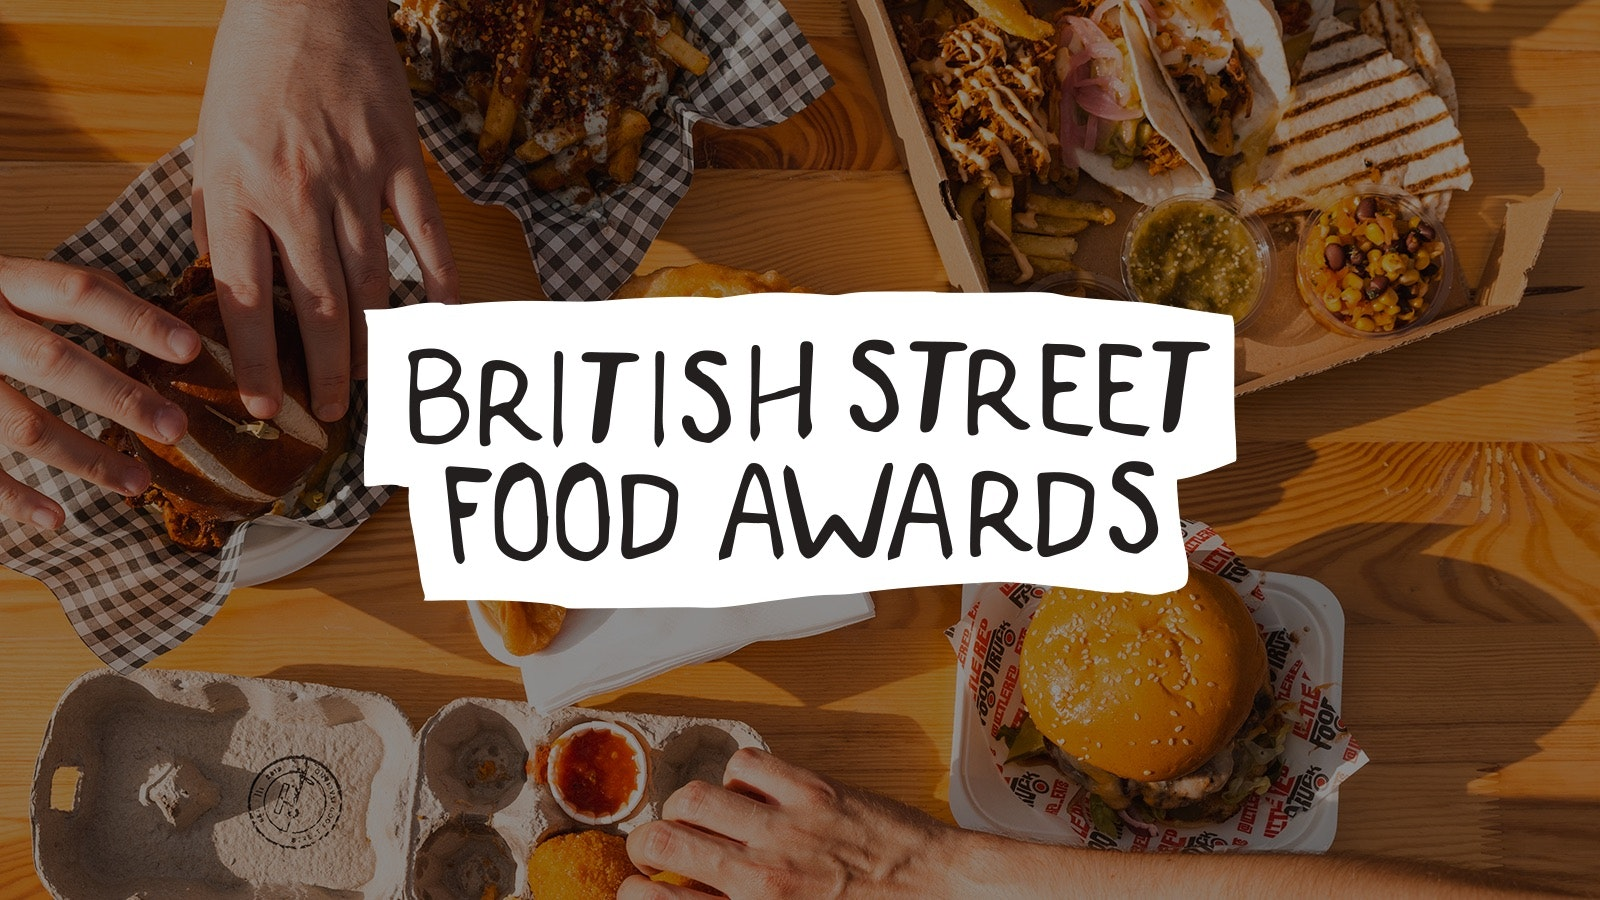 Chow Down: Saturday 21st August – British Street Food Awards Weekend